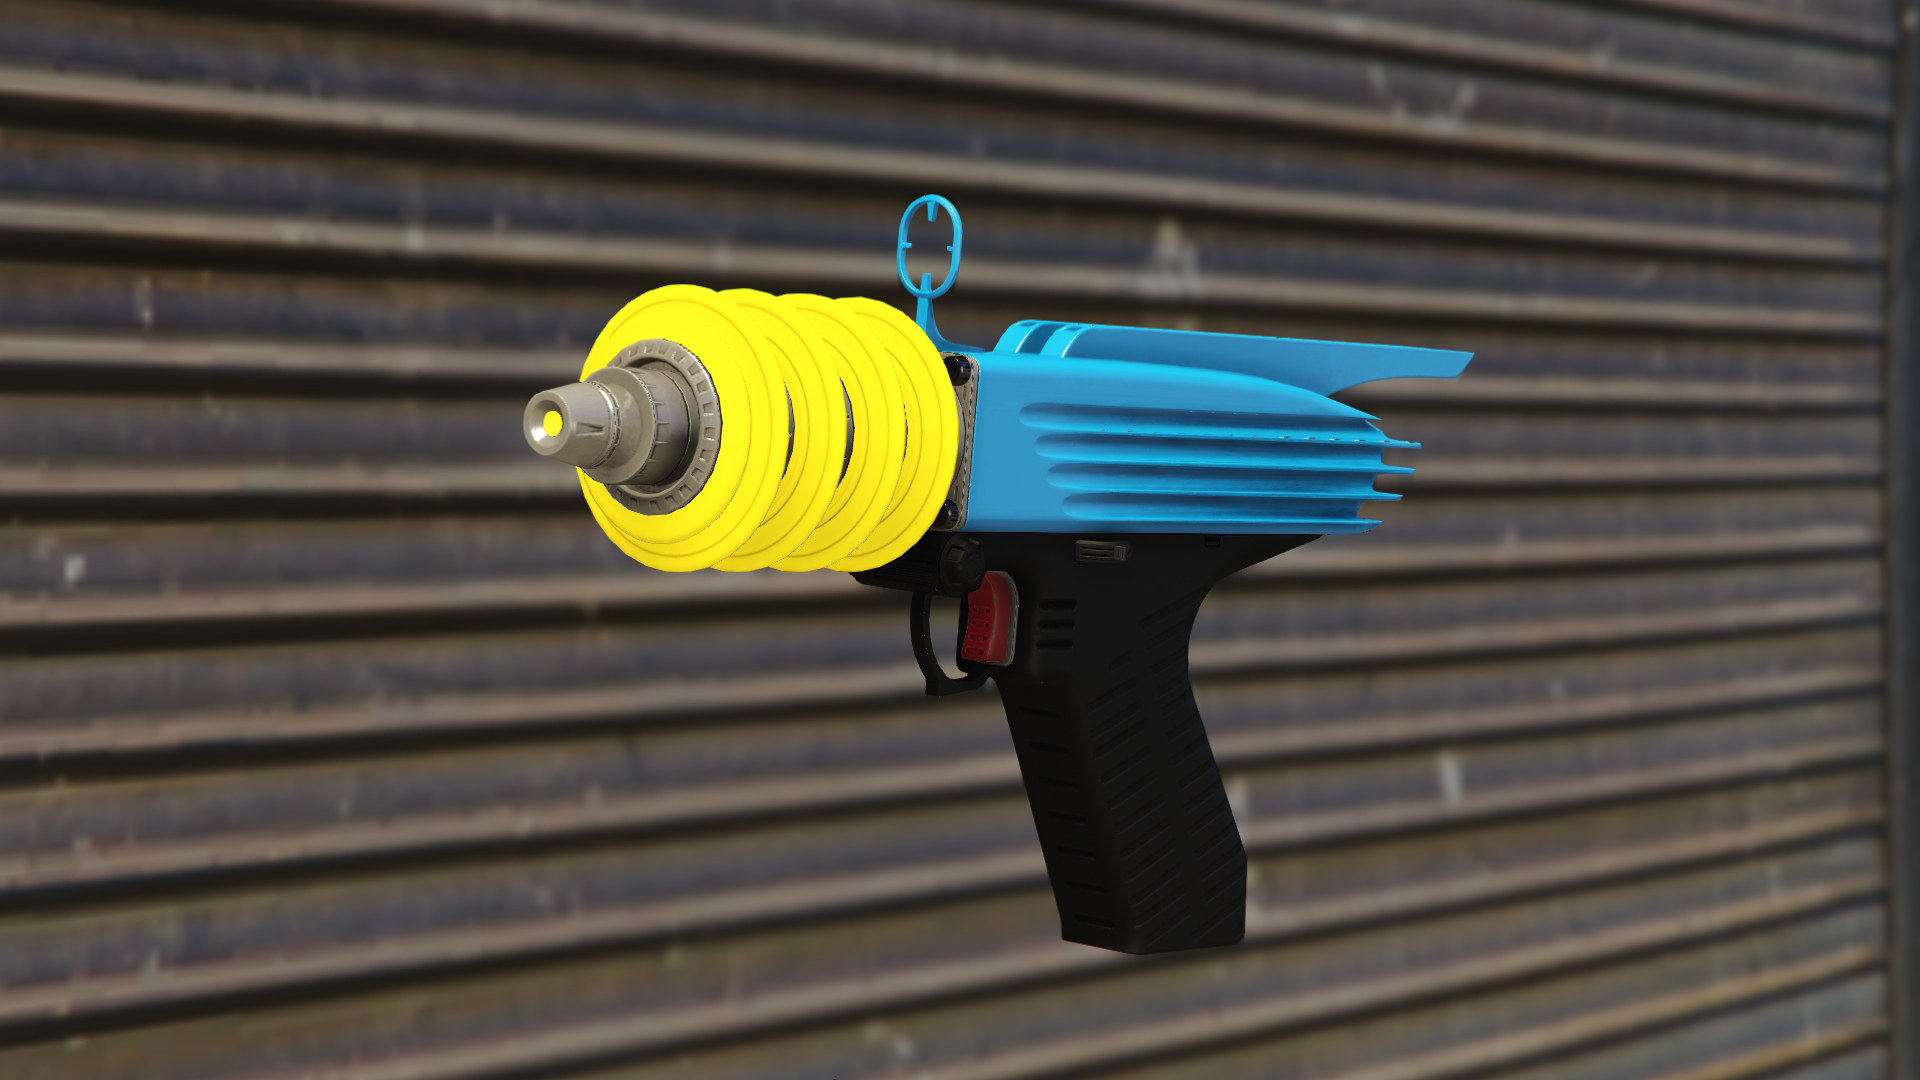 Up-n-Atomizer | GTA Wiki | FANDOM powered by Wikia